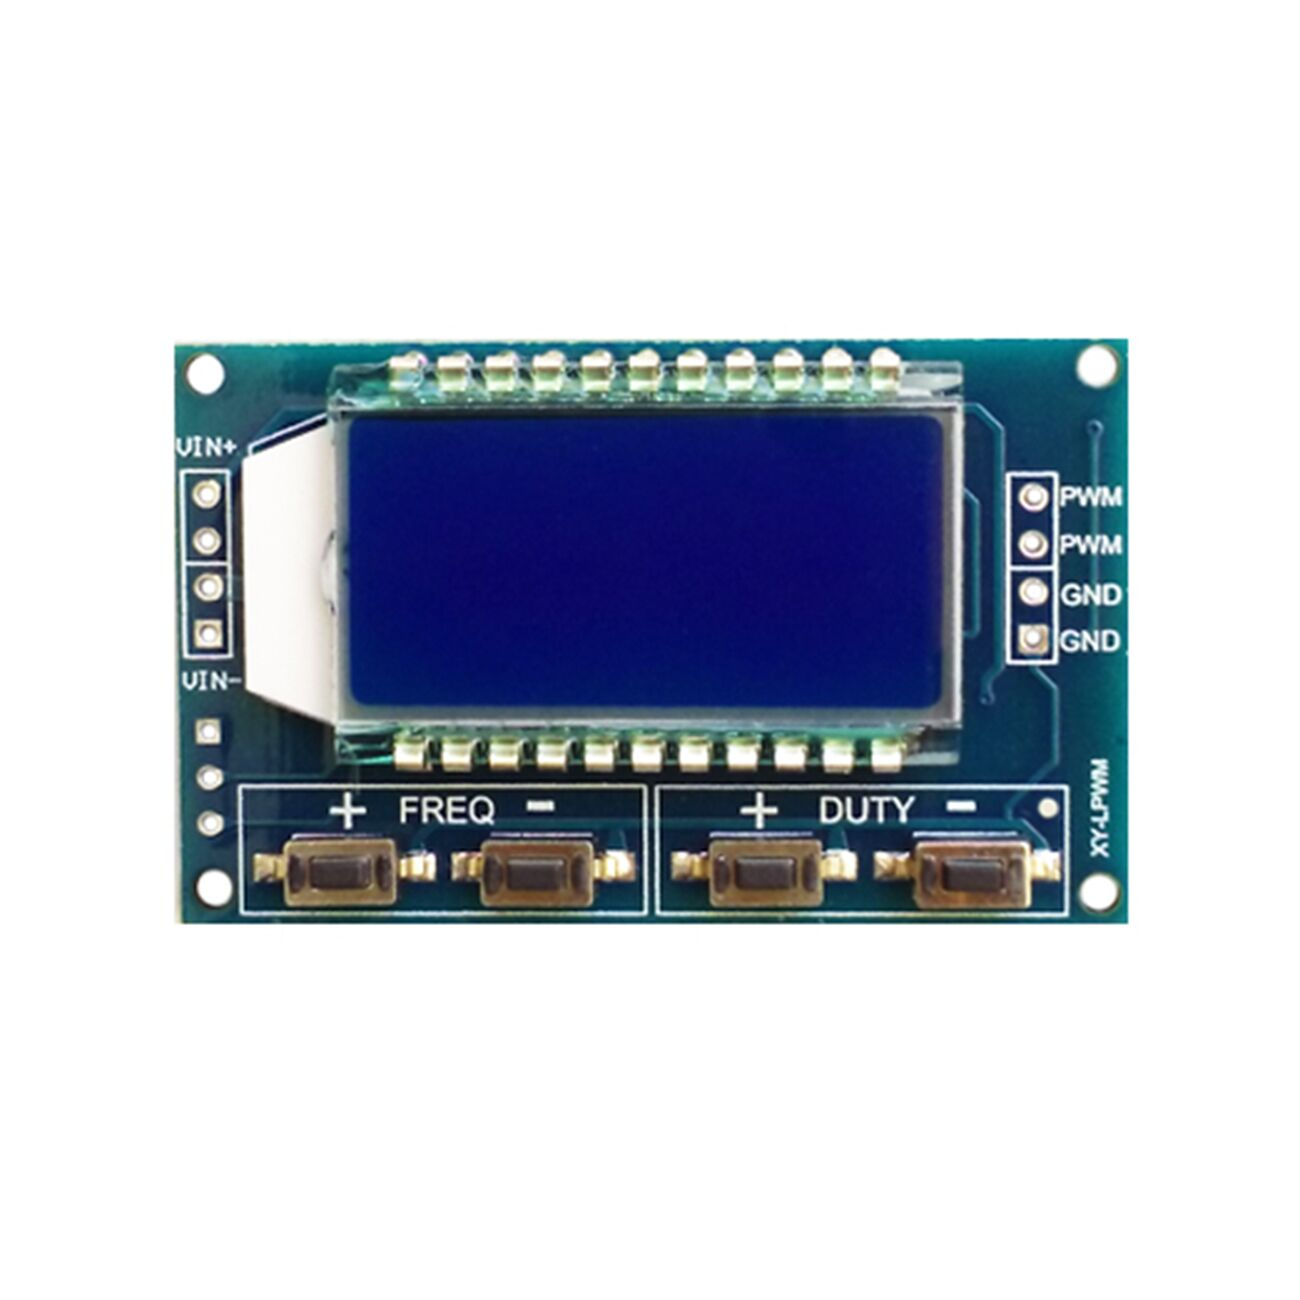 New Signal Generator Pwm Pulse Frequency Duty Cycle Adjustable Generating Circuit Module Lcd Display 1hz 150khz 33v 30v Board In Integrated Circuits From